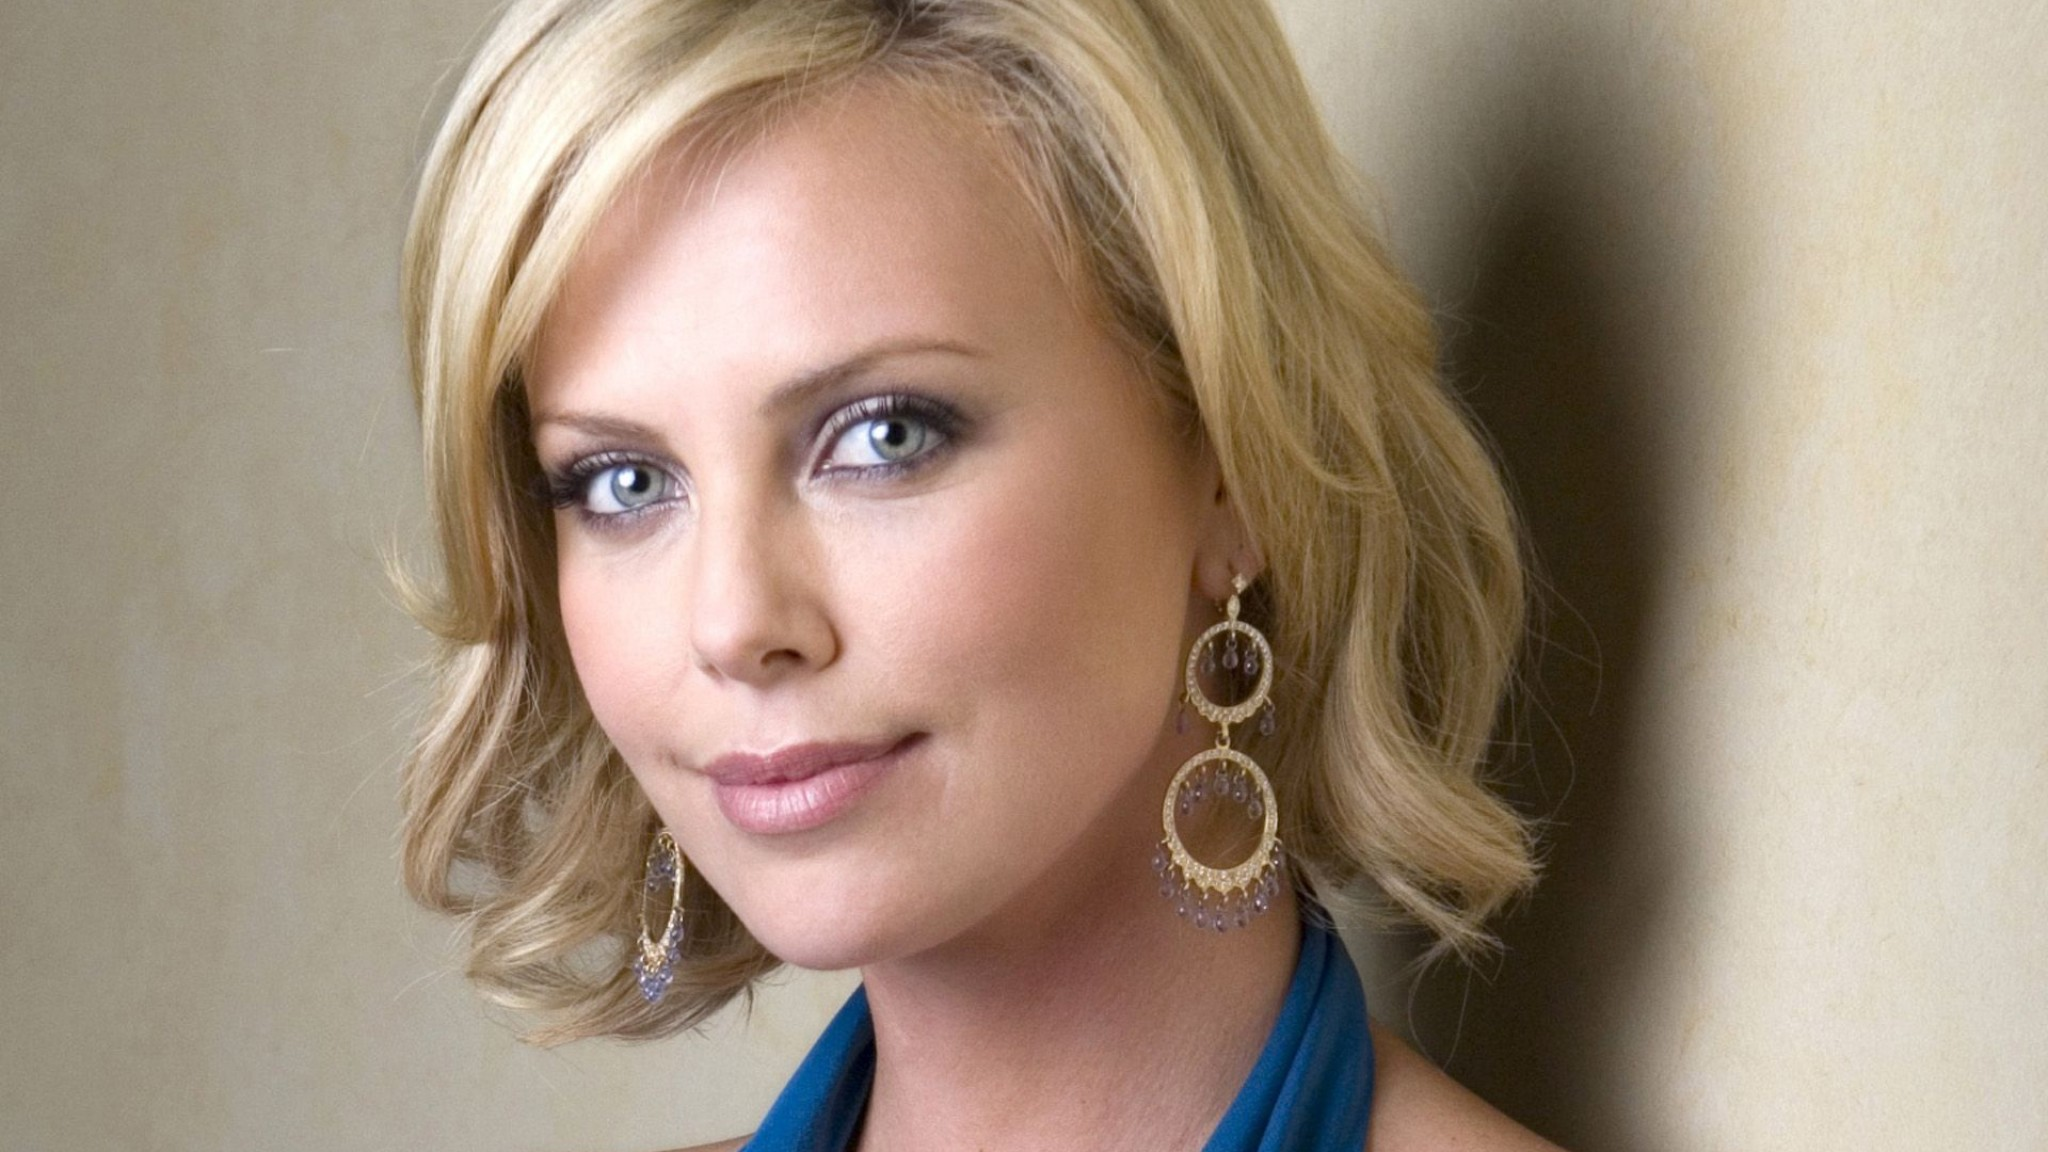 Charlize Theron Wallpaper For Laptop